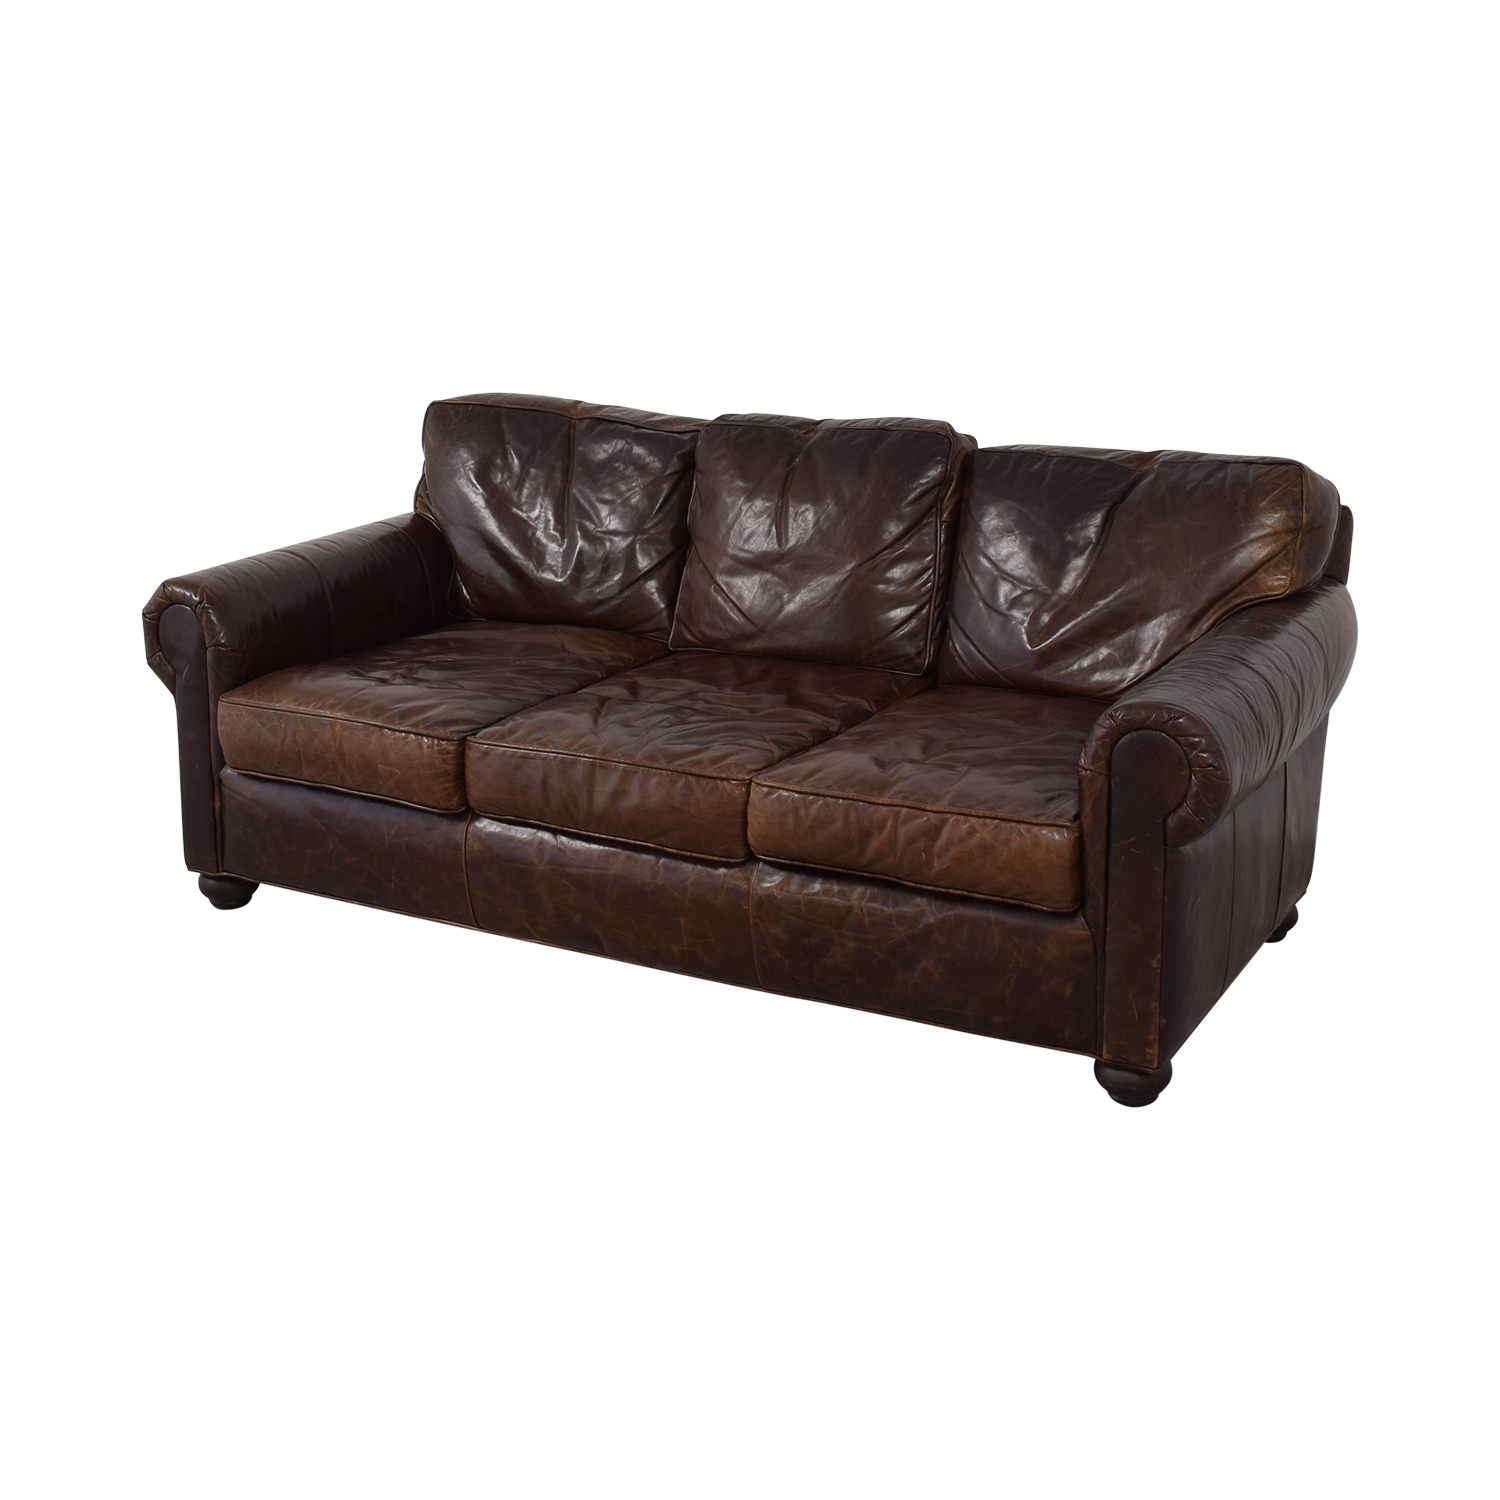 Restoration Hardware Restoration Hardware Lancaster Leather Sofa price